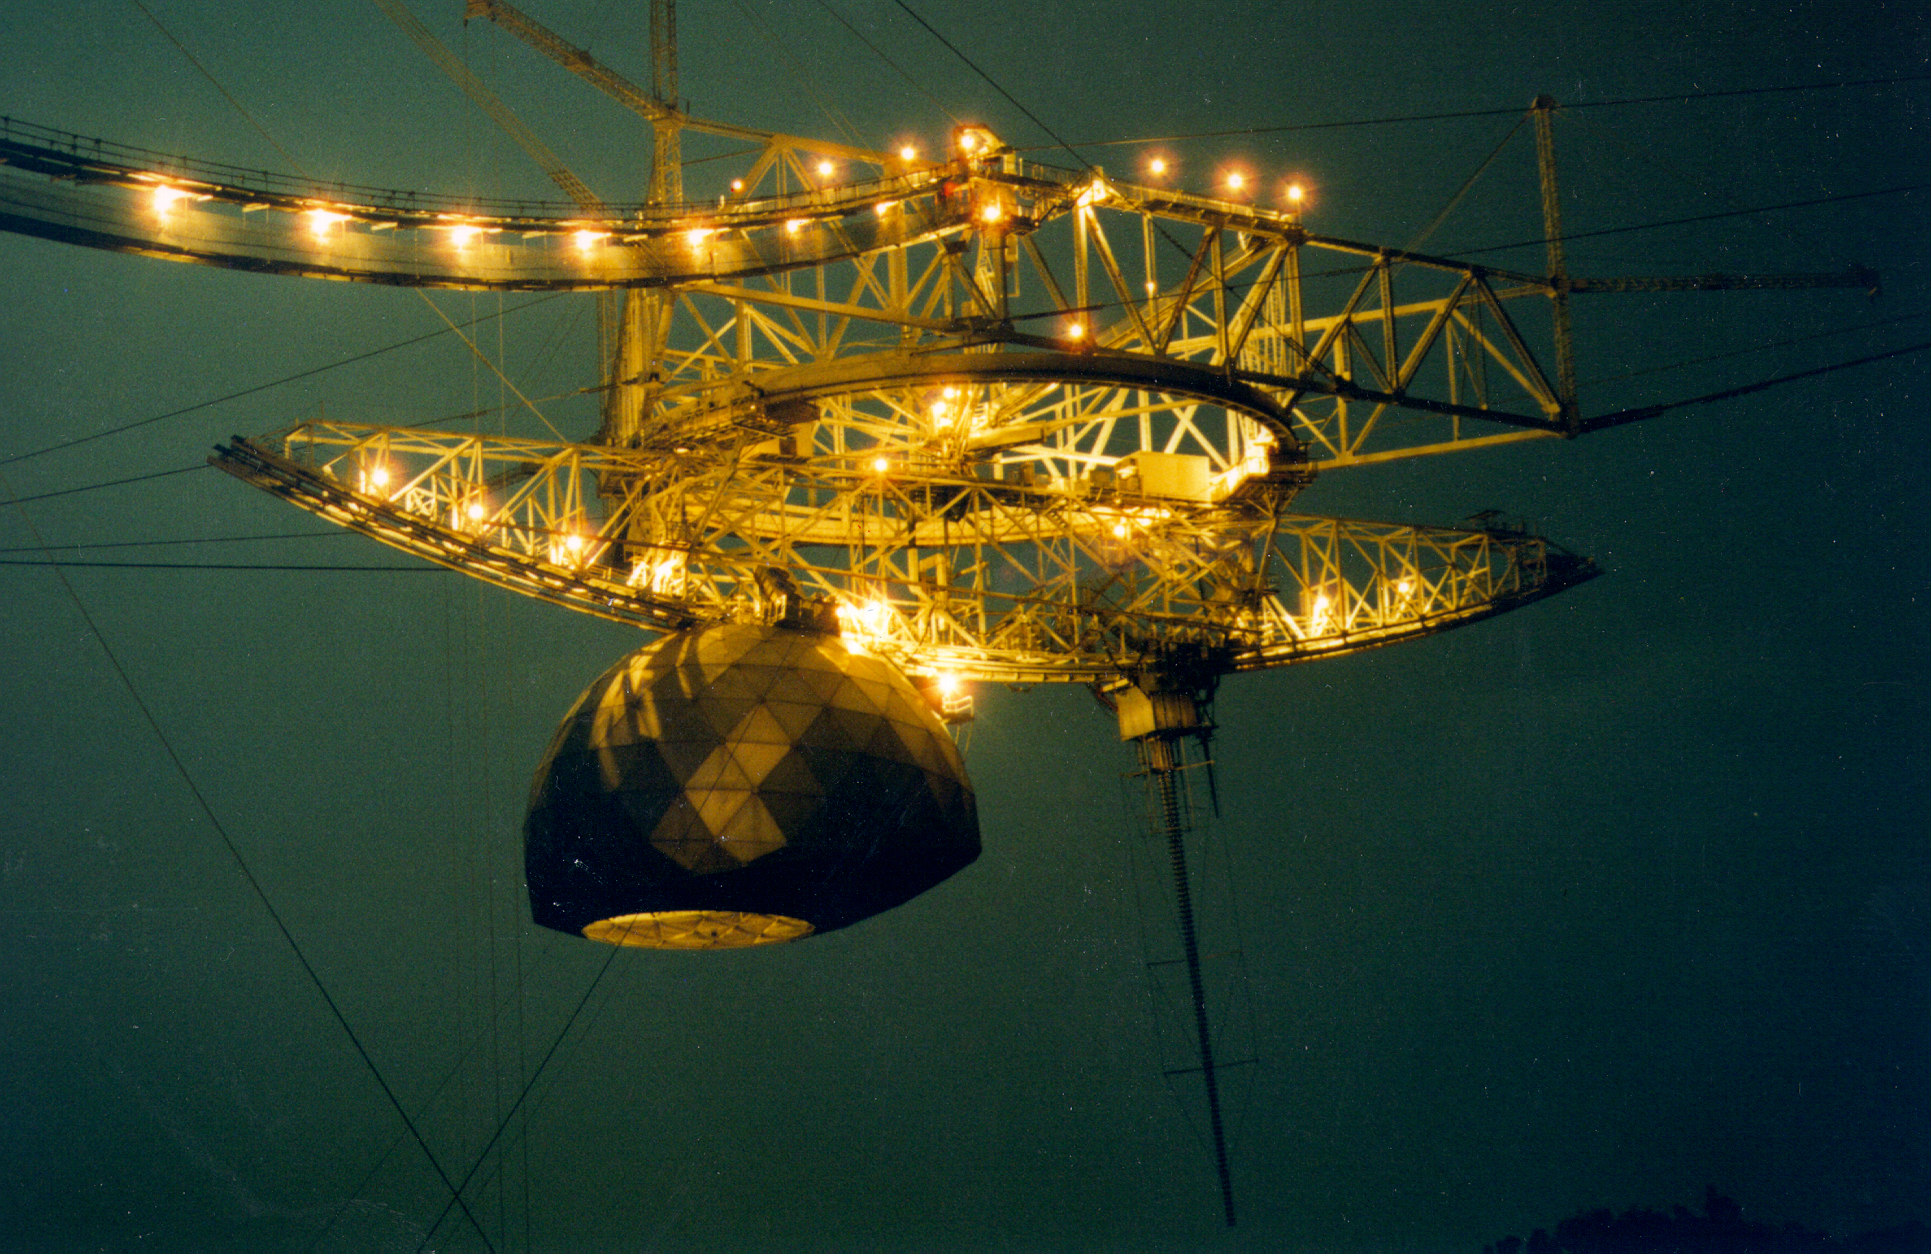 Night Time at Arecibo Observatory